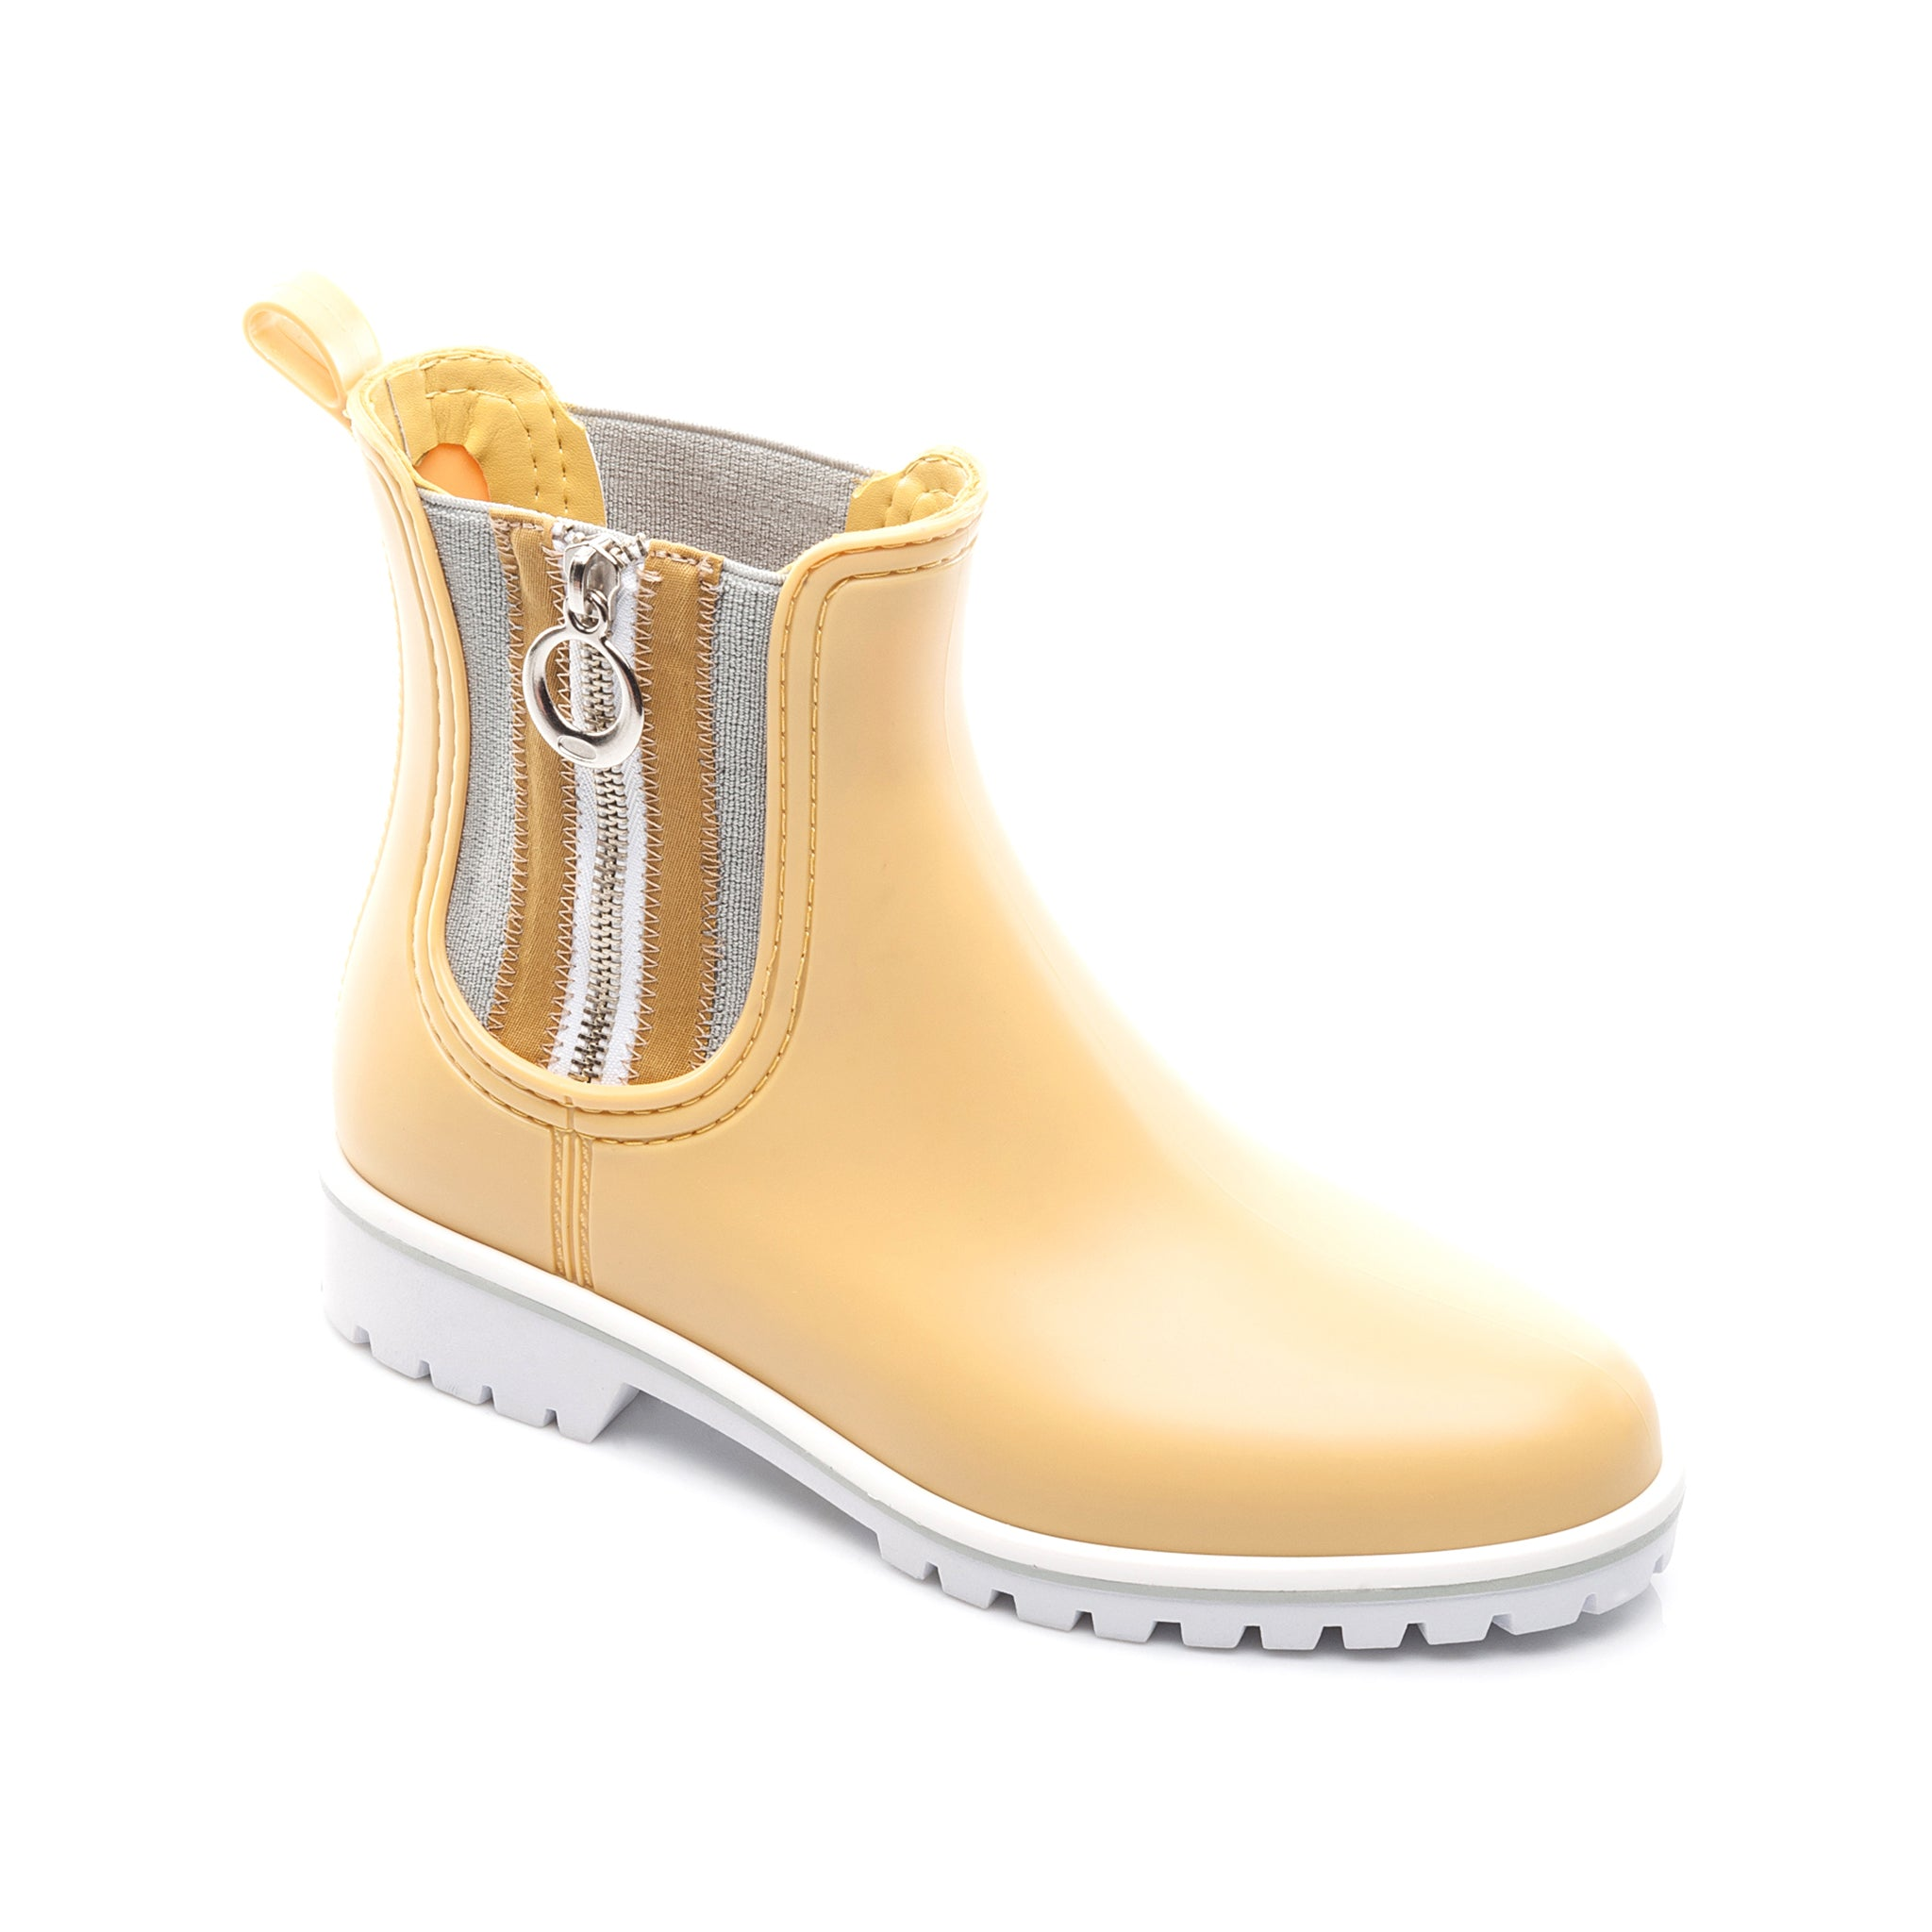 Short yellow rain boots with side zipper